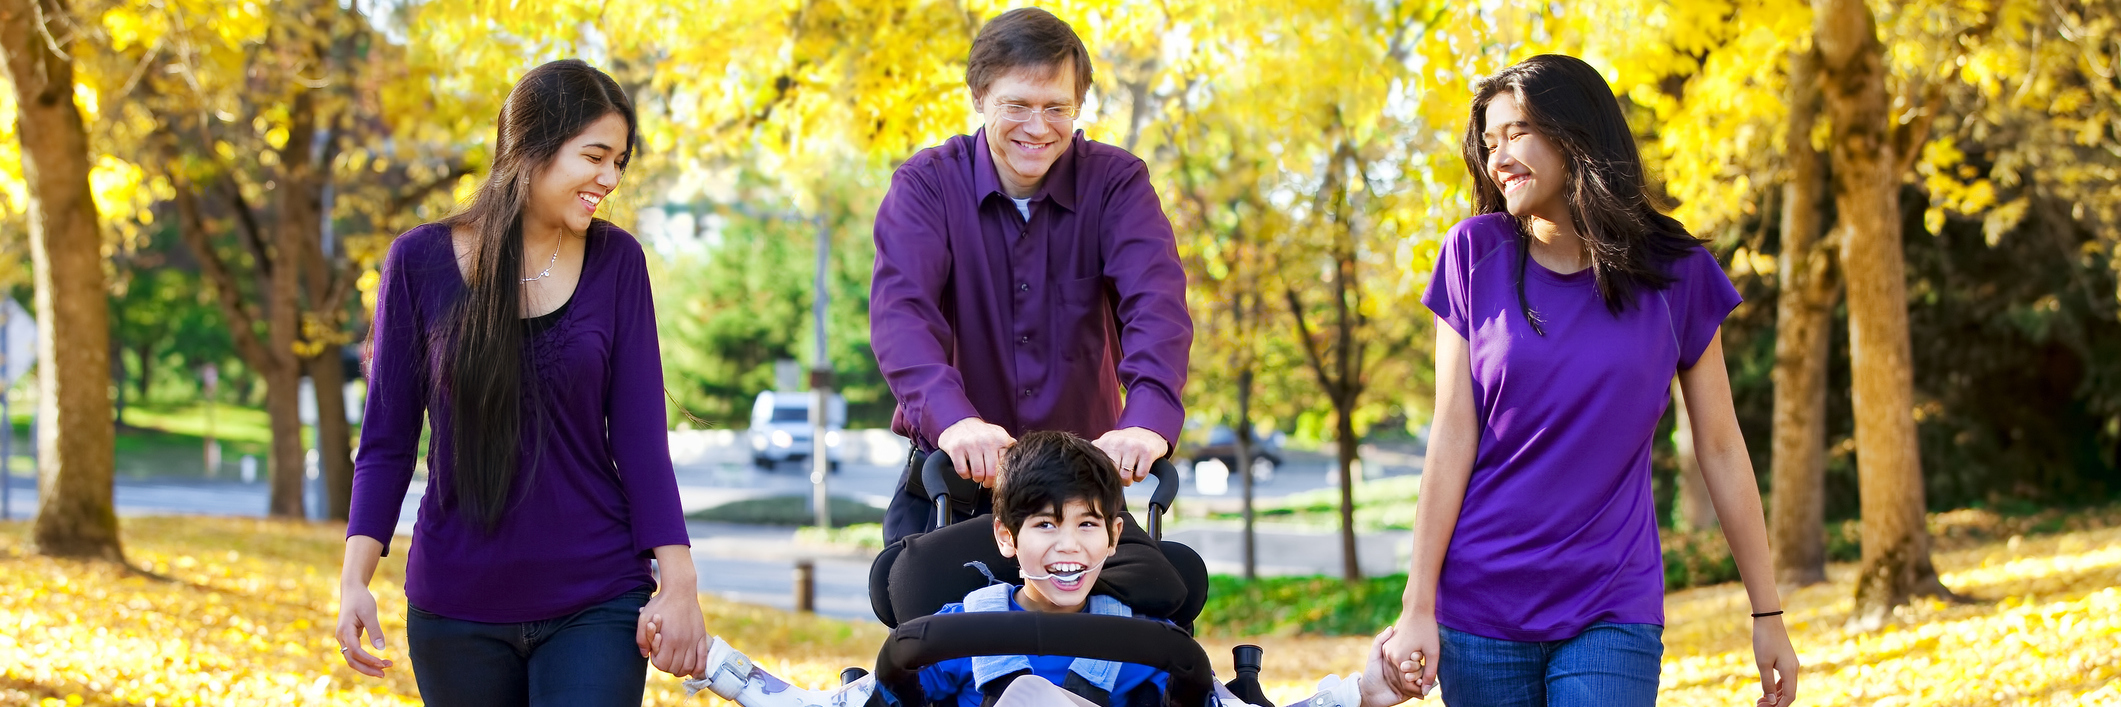 Family with disabled child in wheelchair walking among autumn leaves.